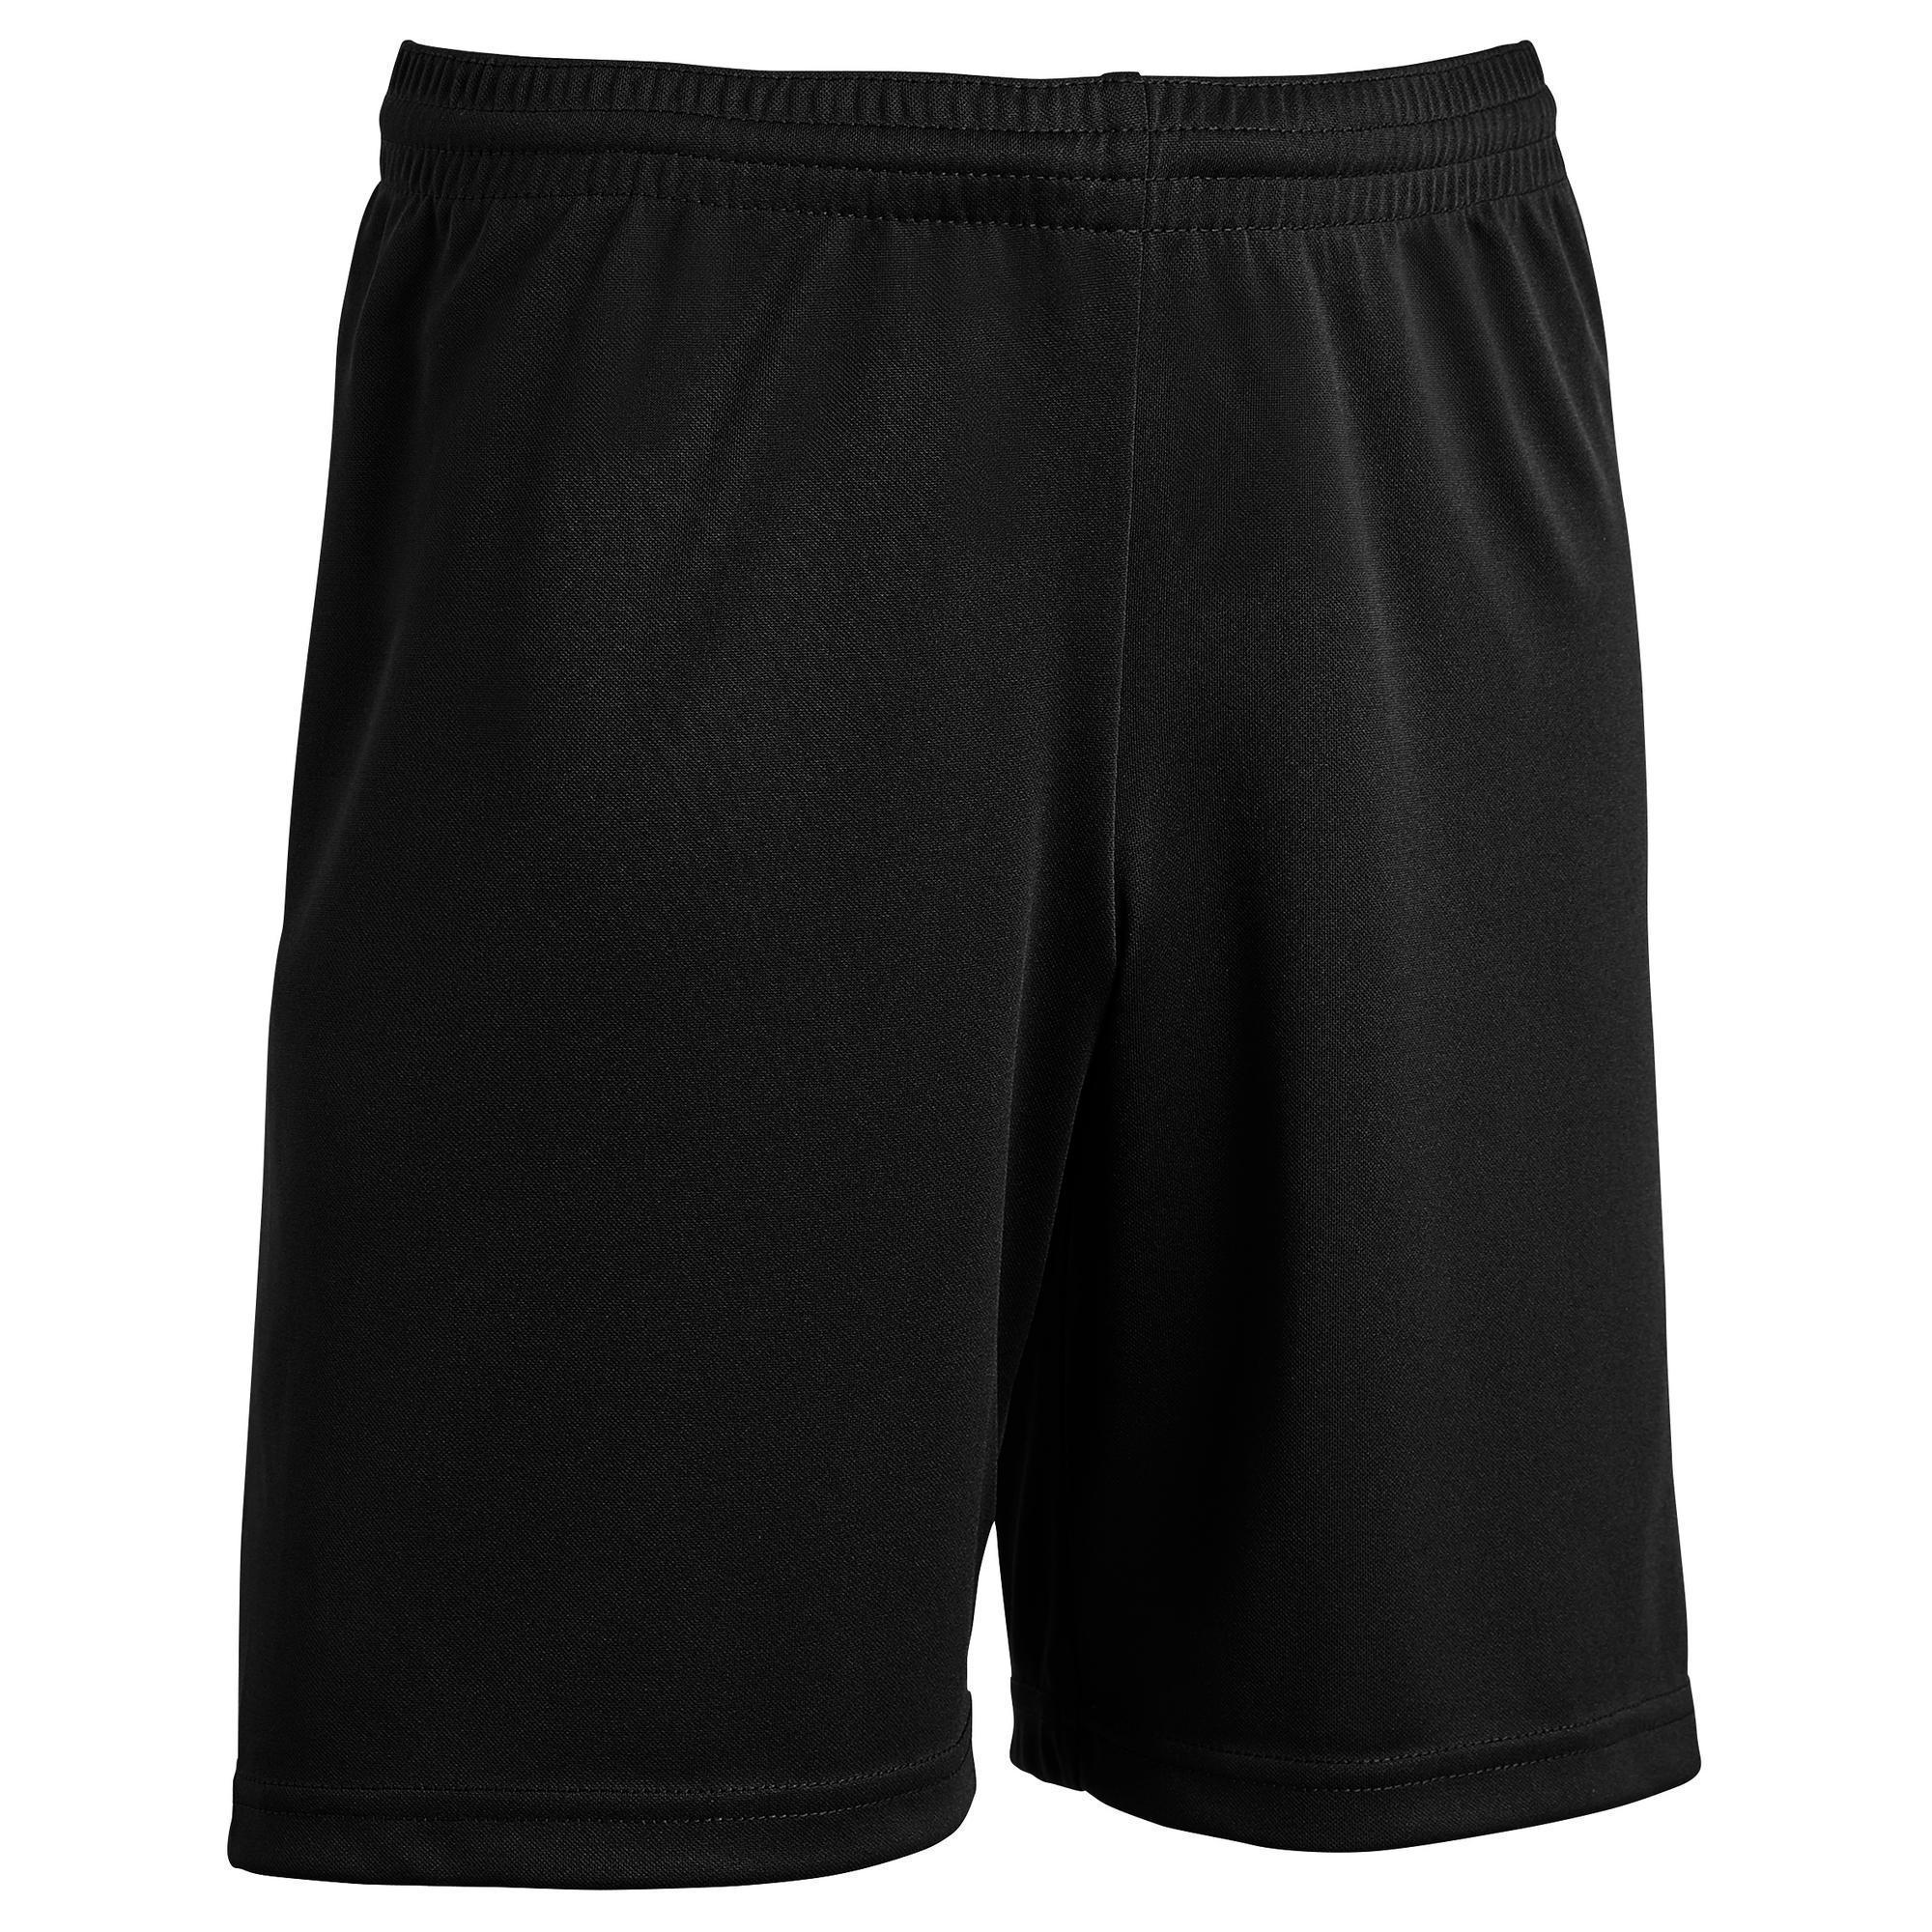 Short de football enfant F100 noir  d9cd9358e96